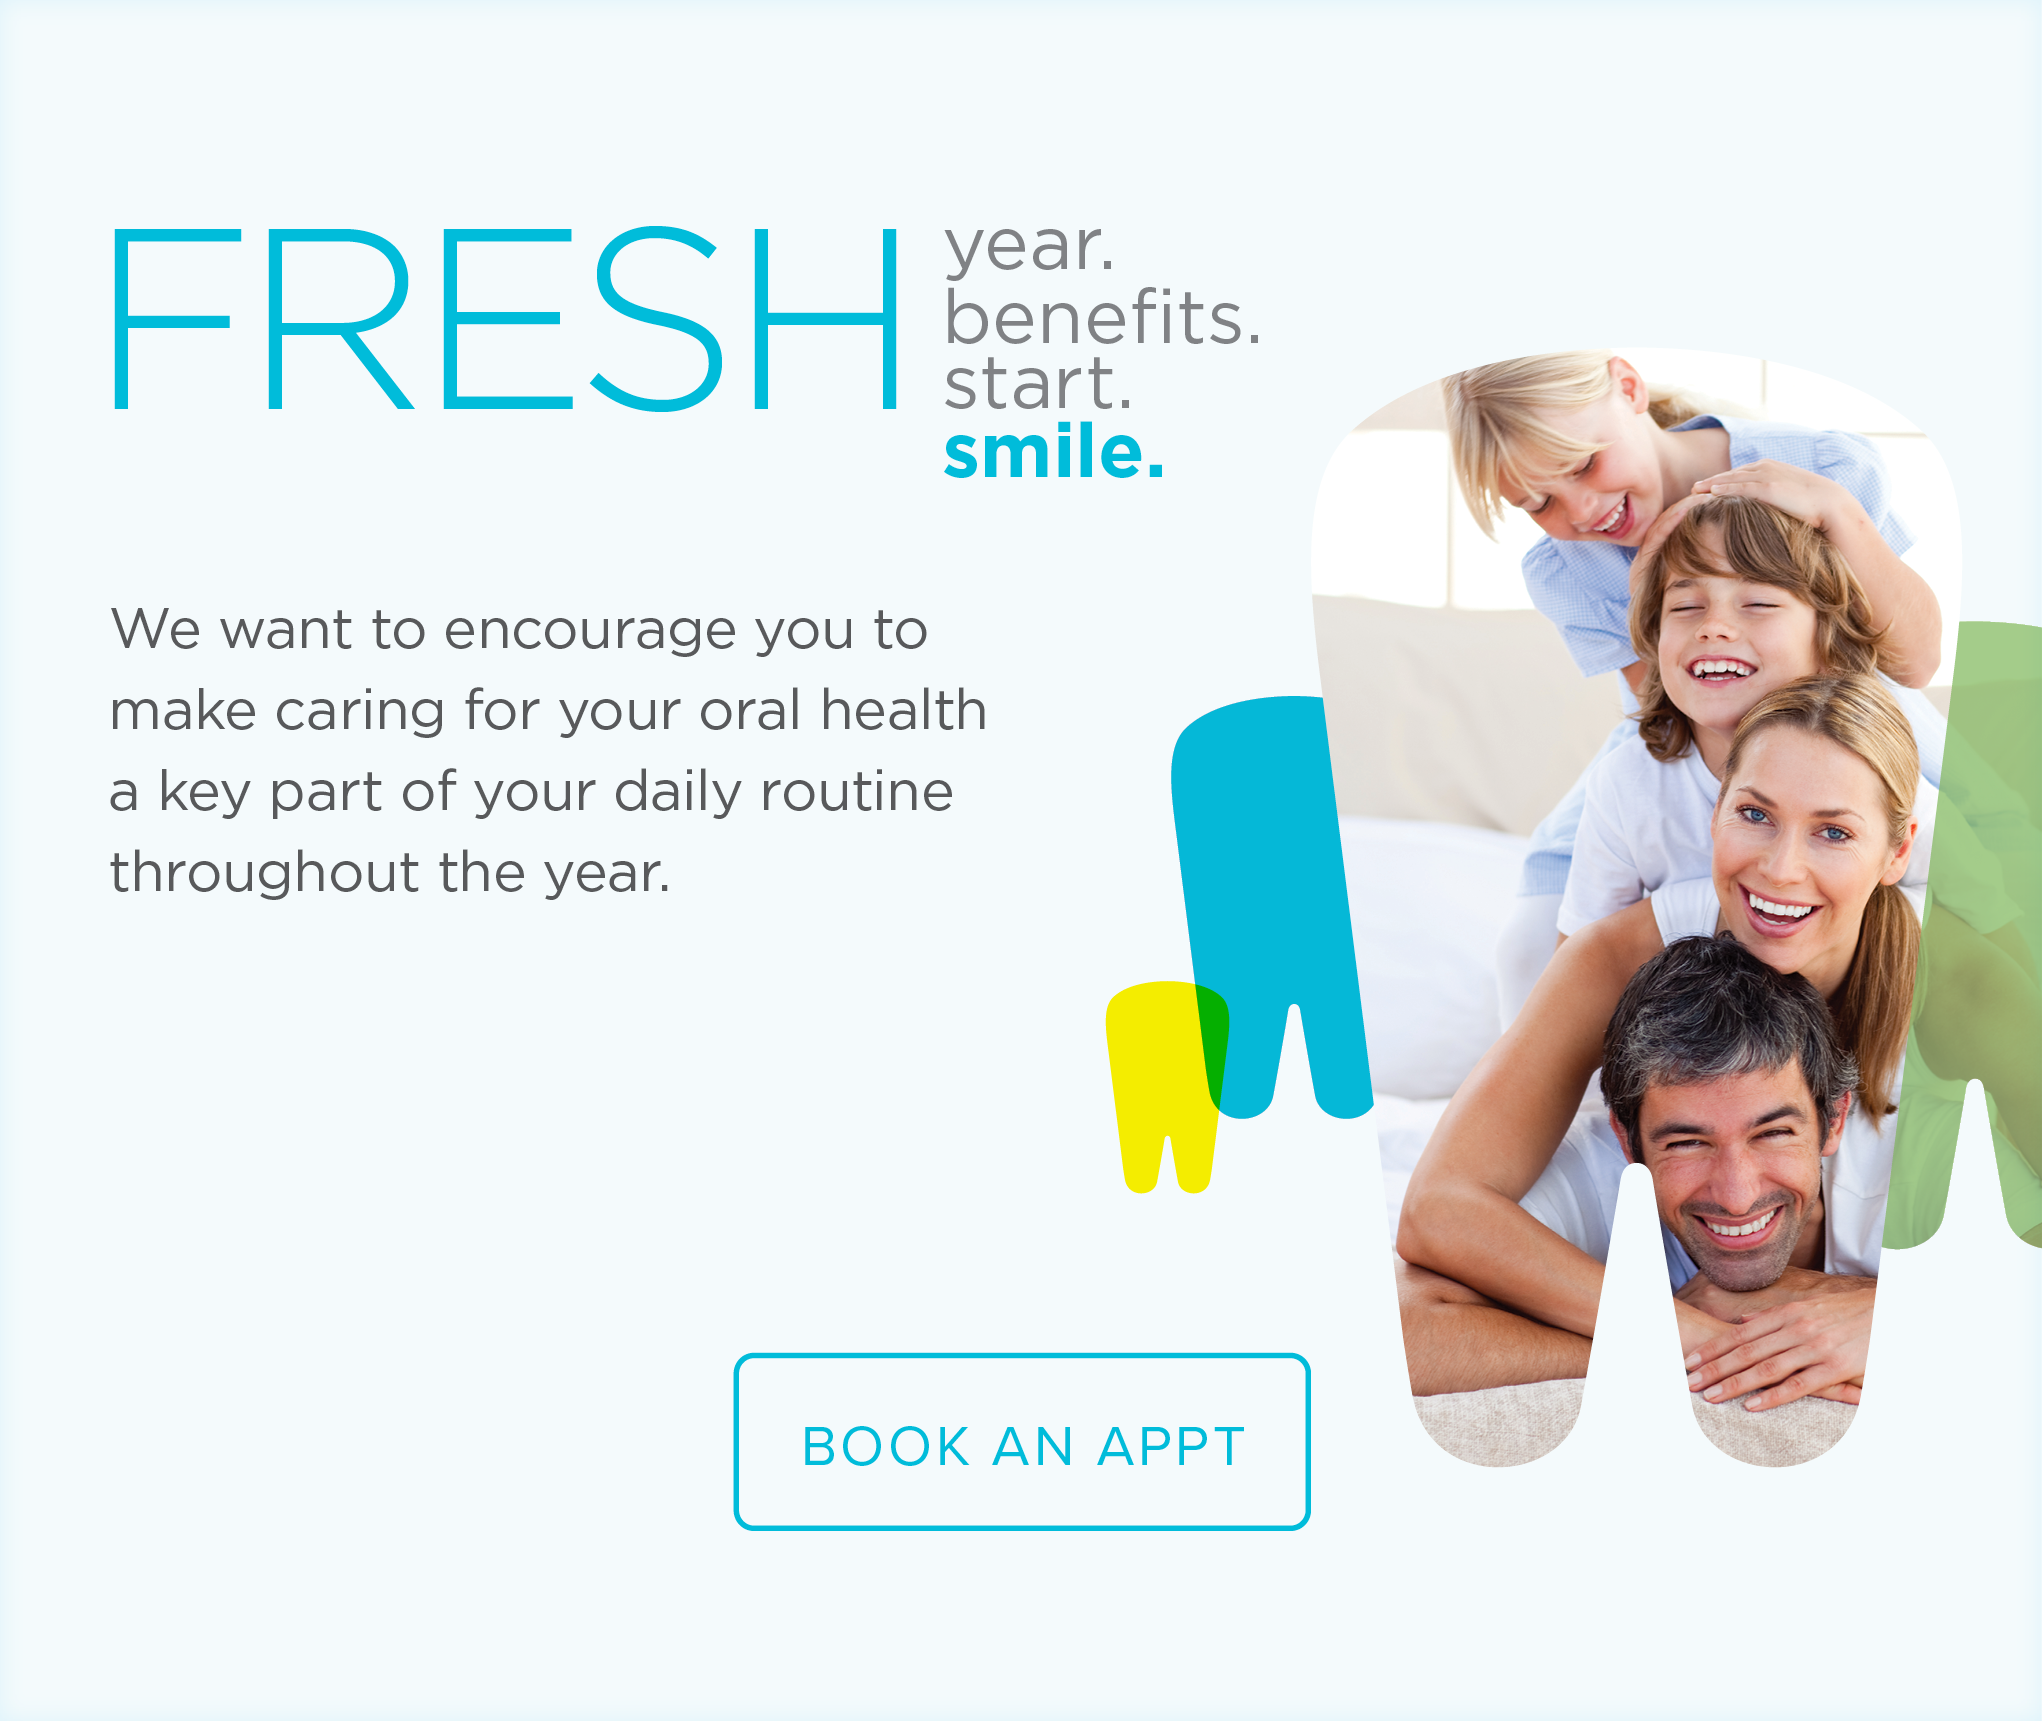 Ladue  Dental Group - Make the Most of Your Benefits